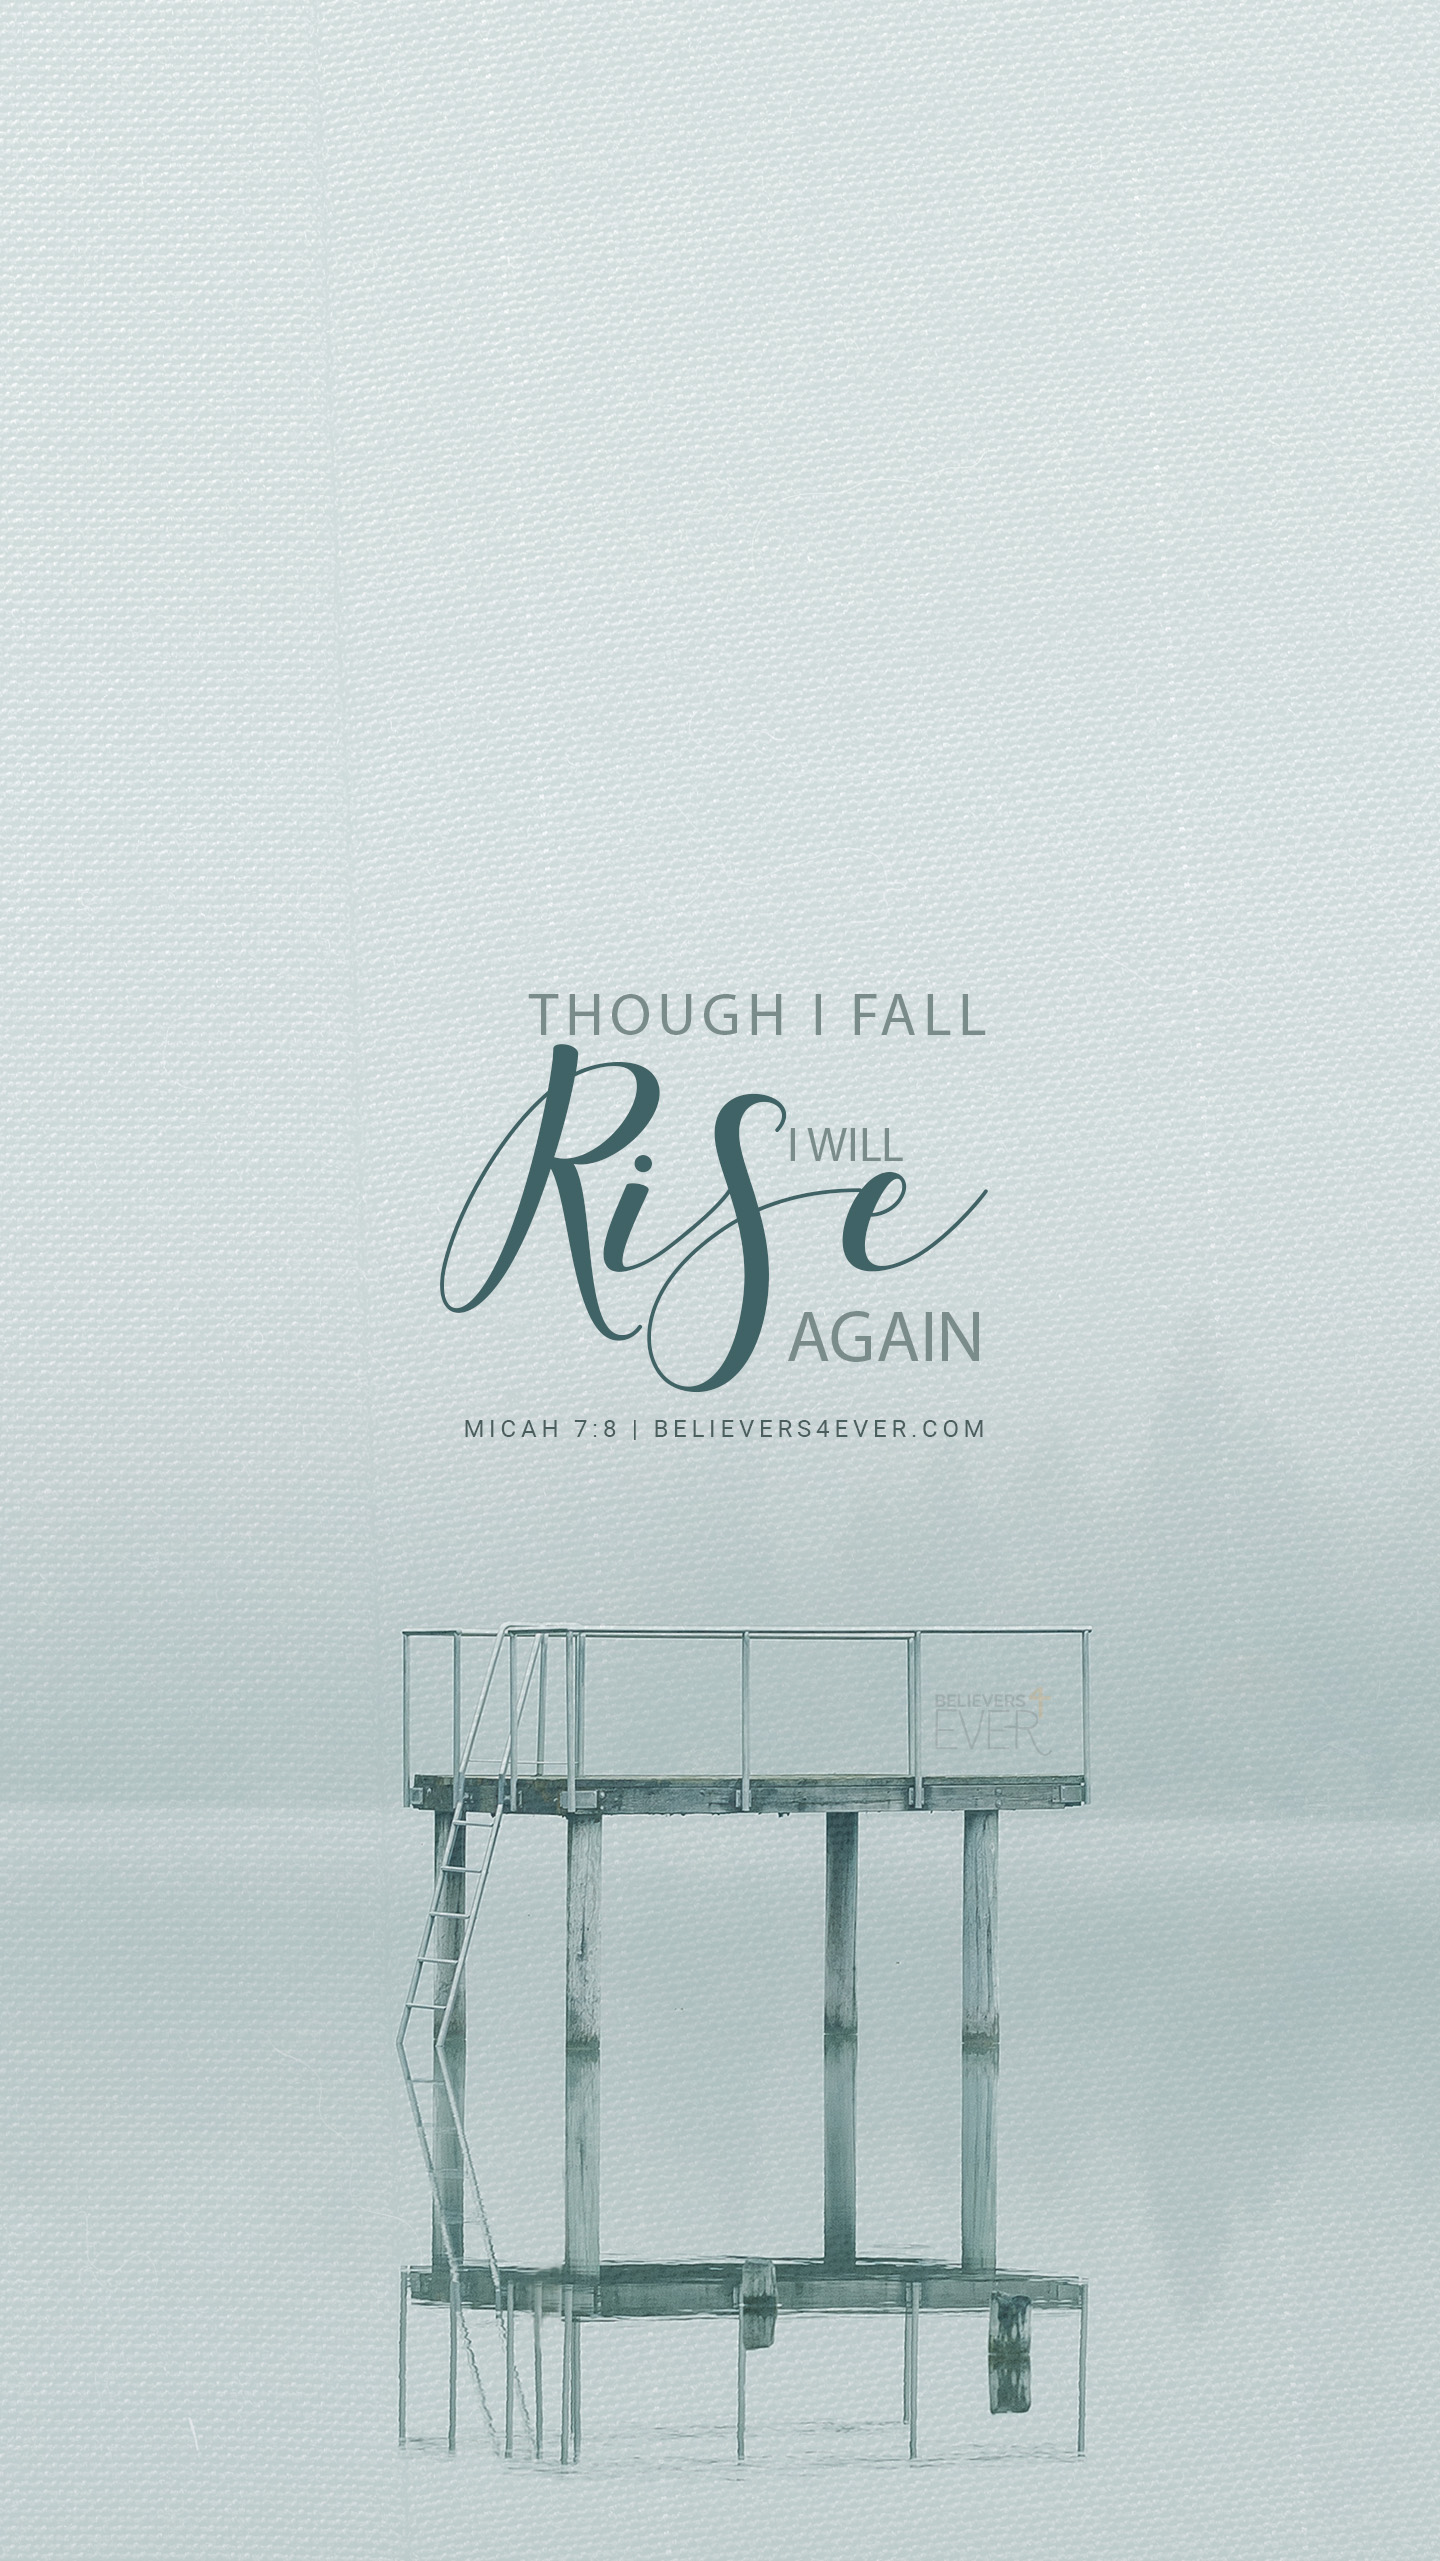 Though I fall, I will rise again. Micah 7:8